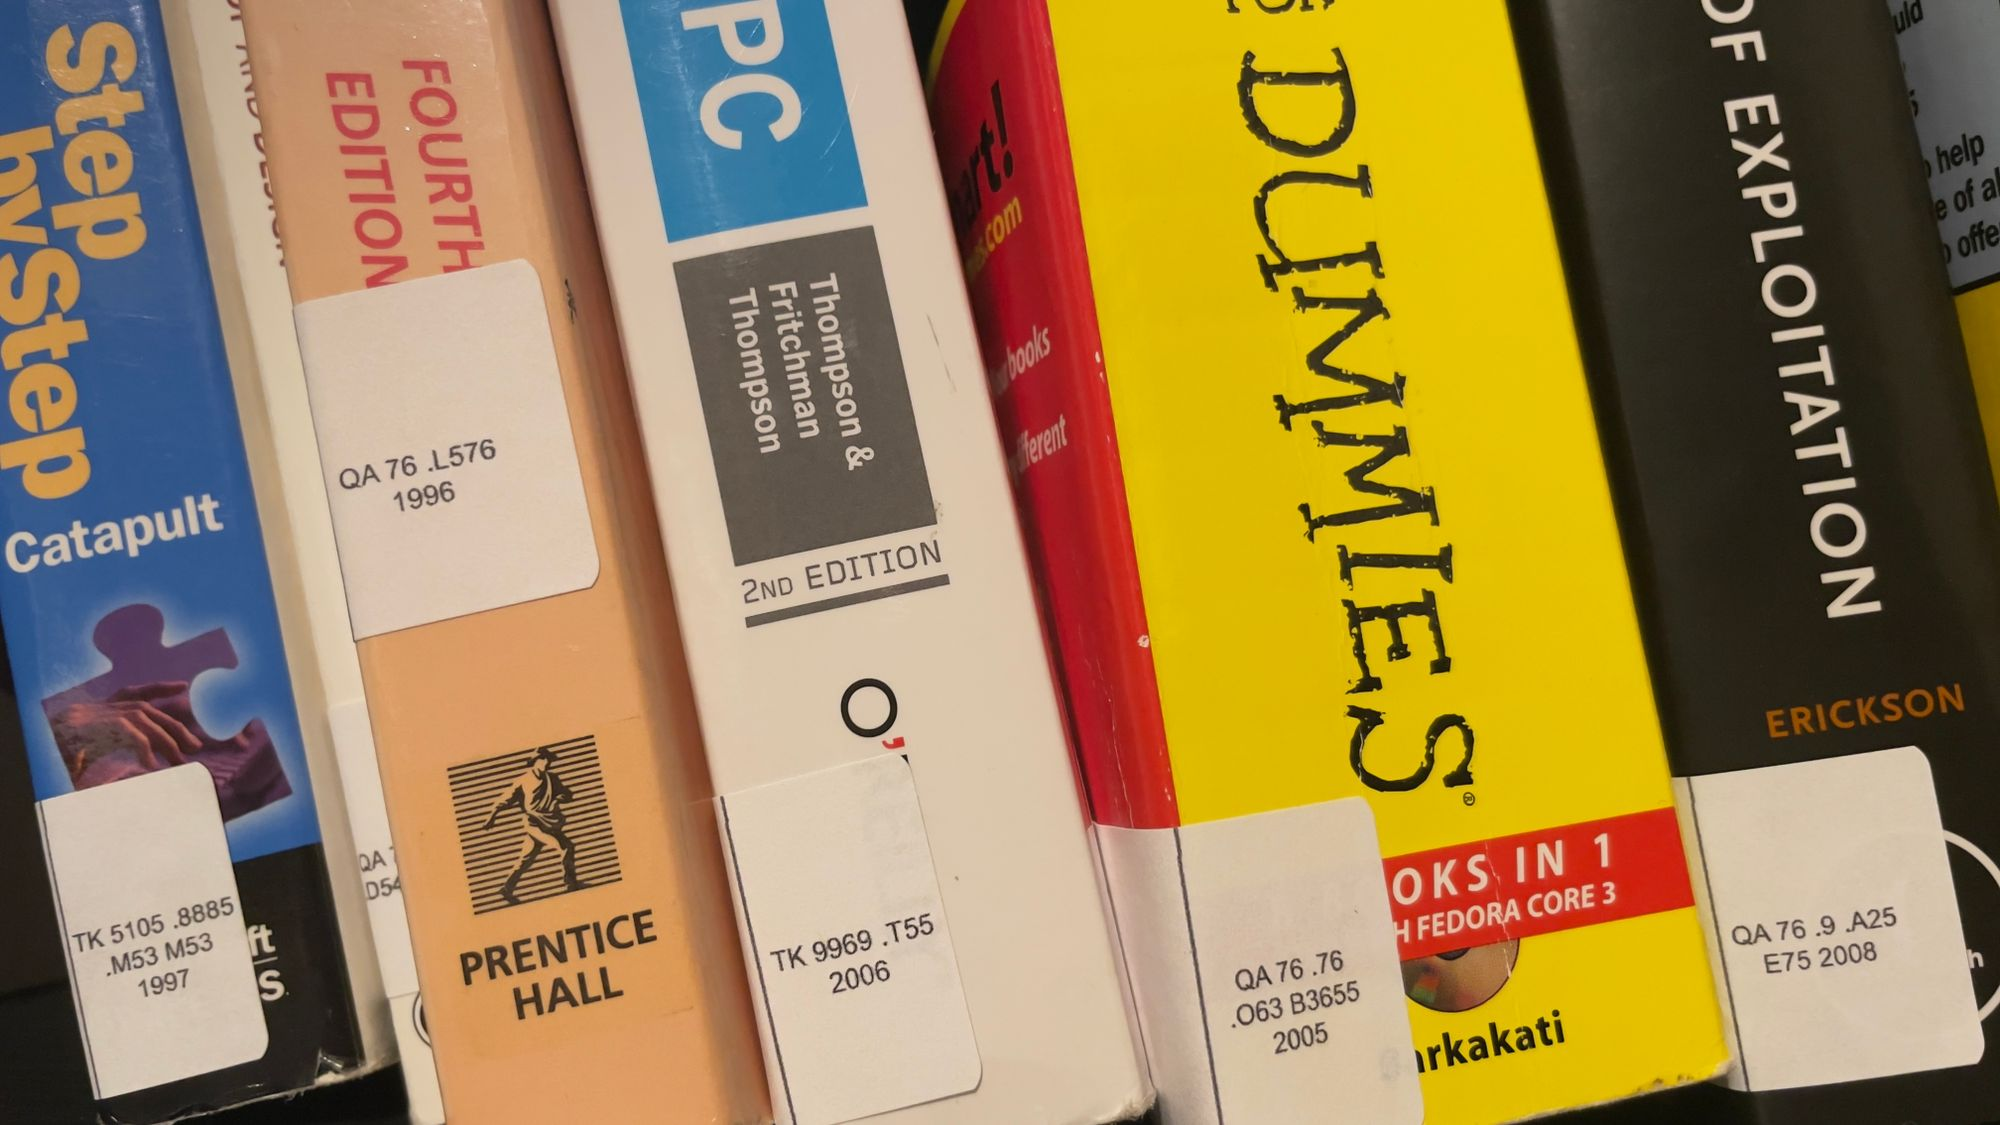 5 books sitting on a bookshelf, each with stickers on their spines showing a Library of Congress Classification number